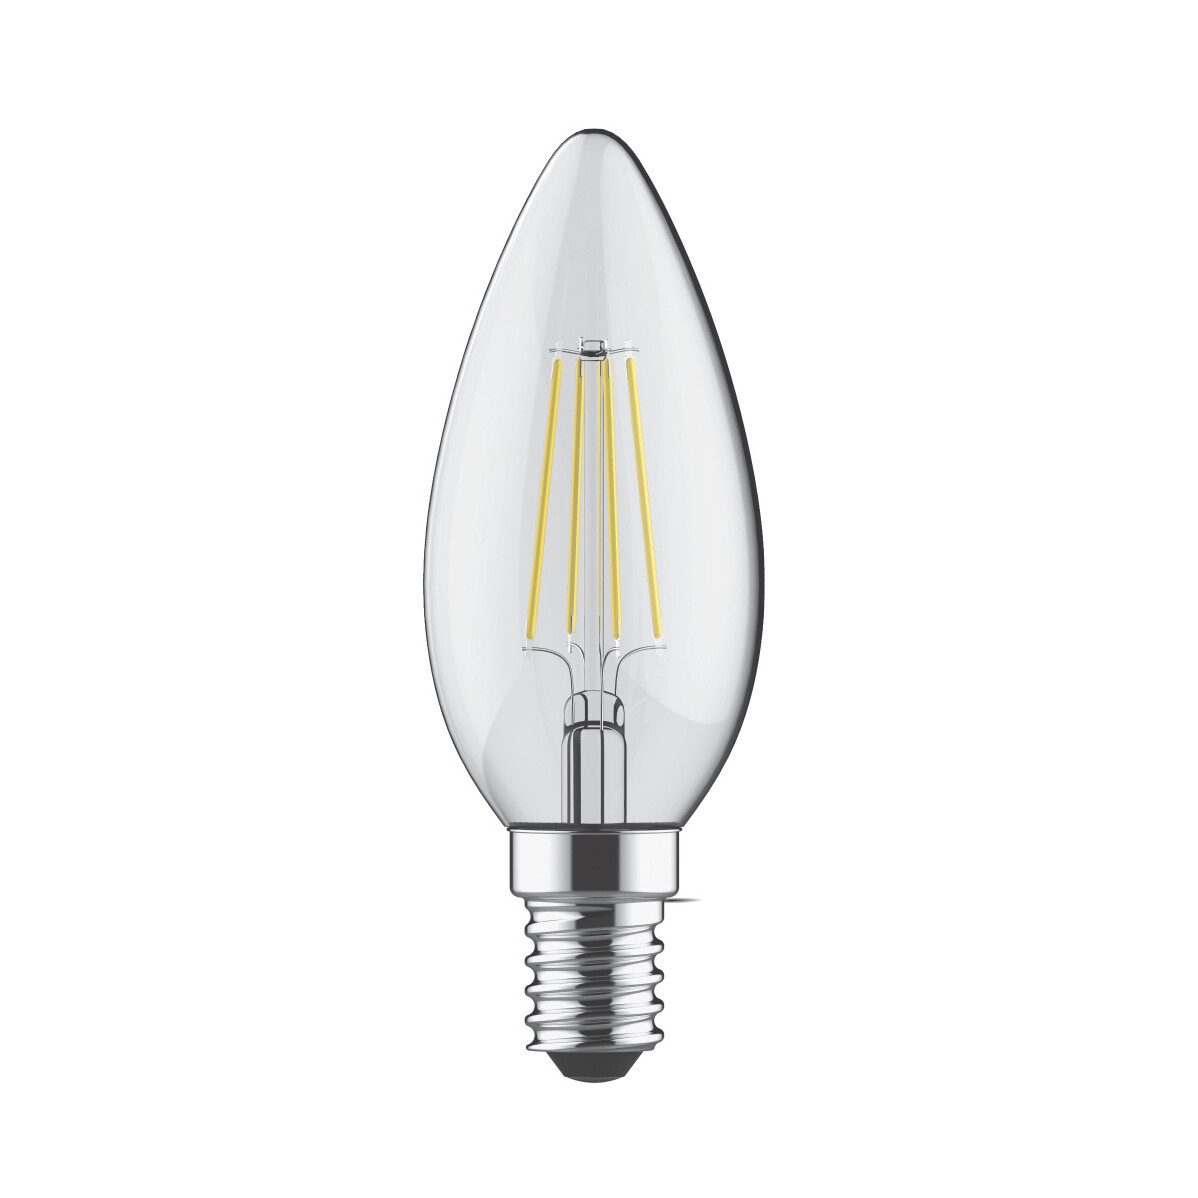 E14-LED filament-C35 5.5 Watt 2700K (warm white) 600lm clear DIMMABLE